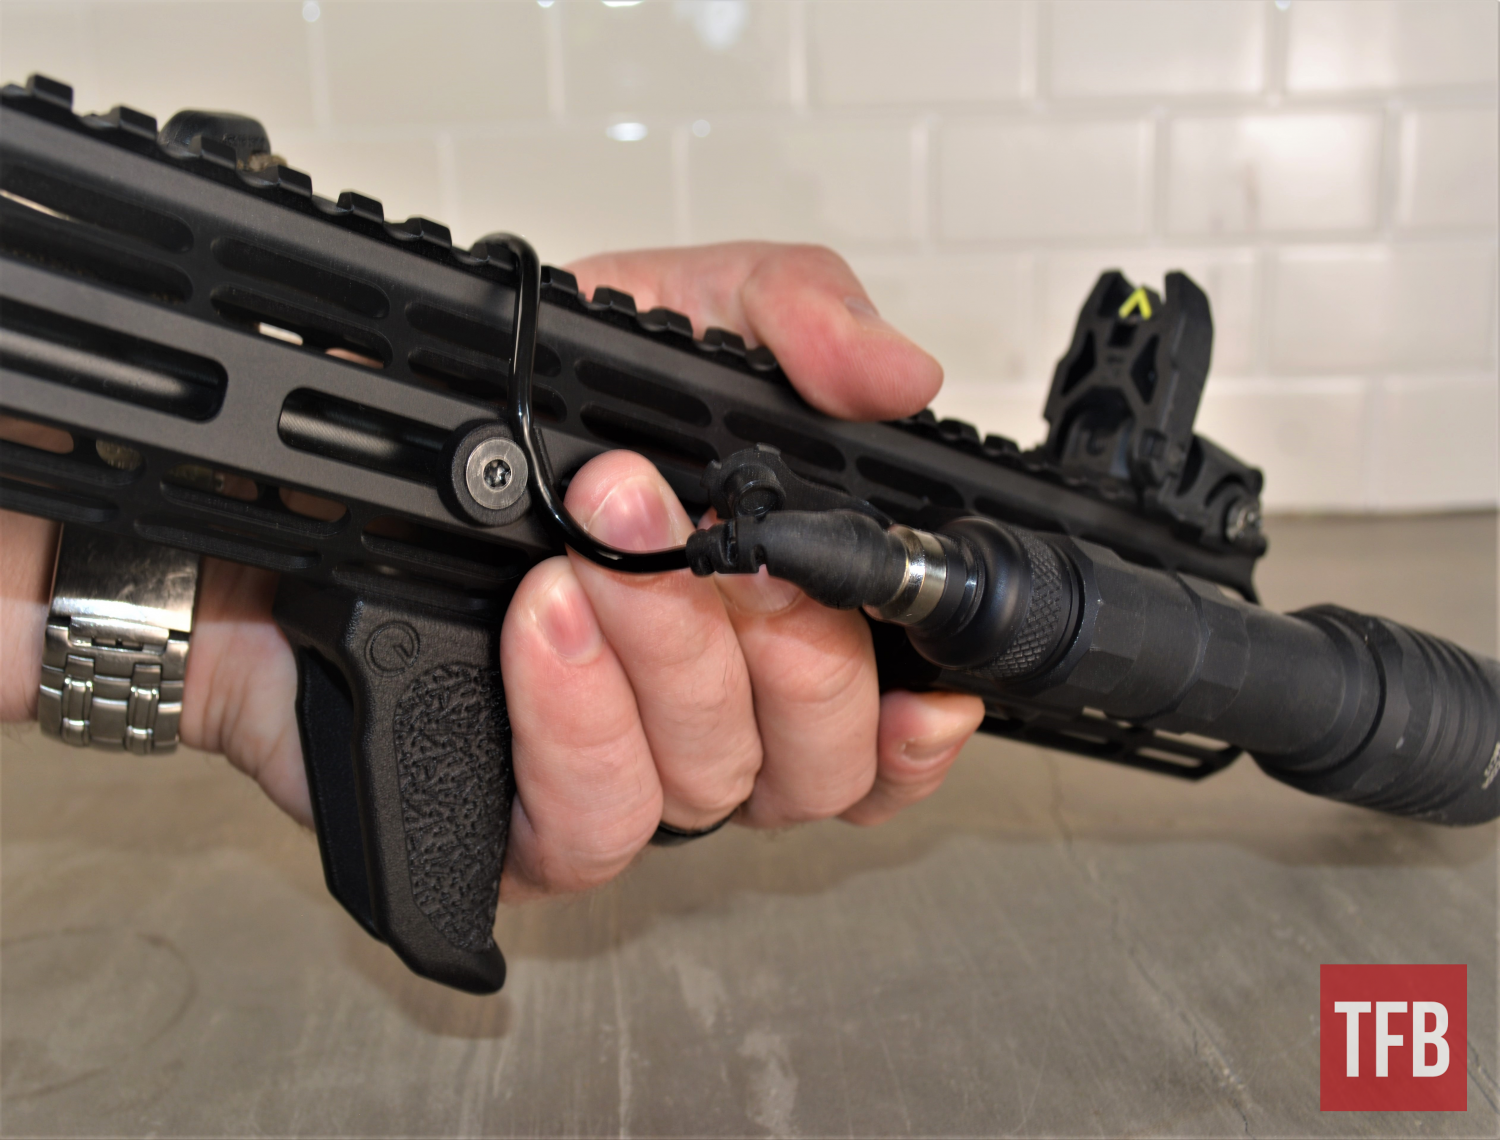 One of Emissary Development's Micro Cable Clips and Handbrakes on my tester rifle for hands-on evaluation.